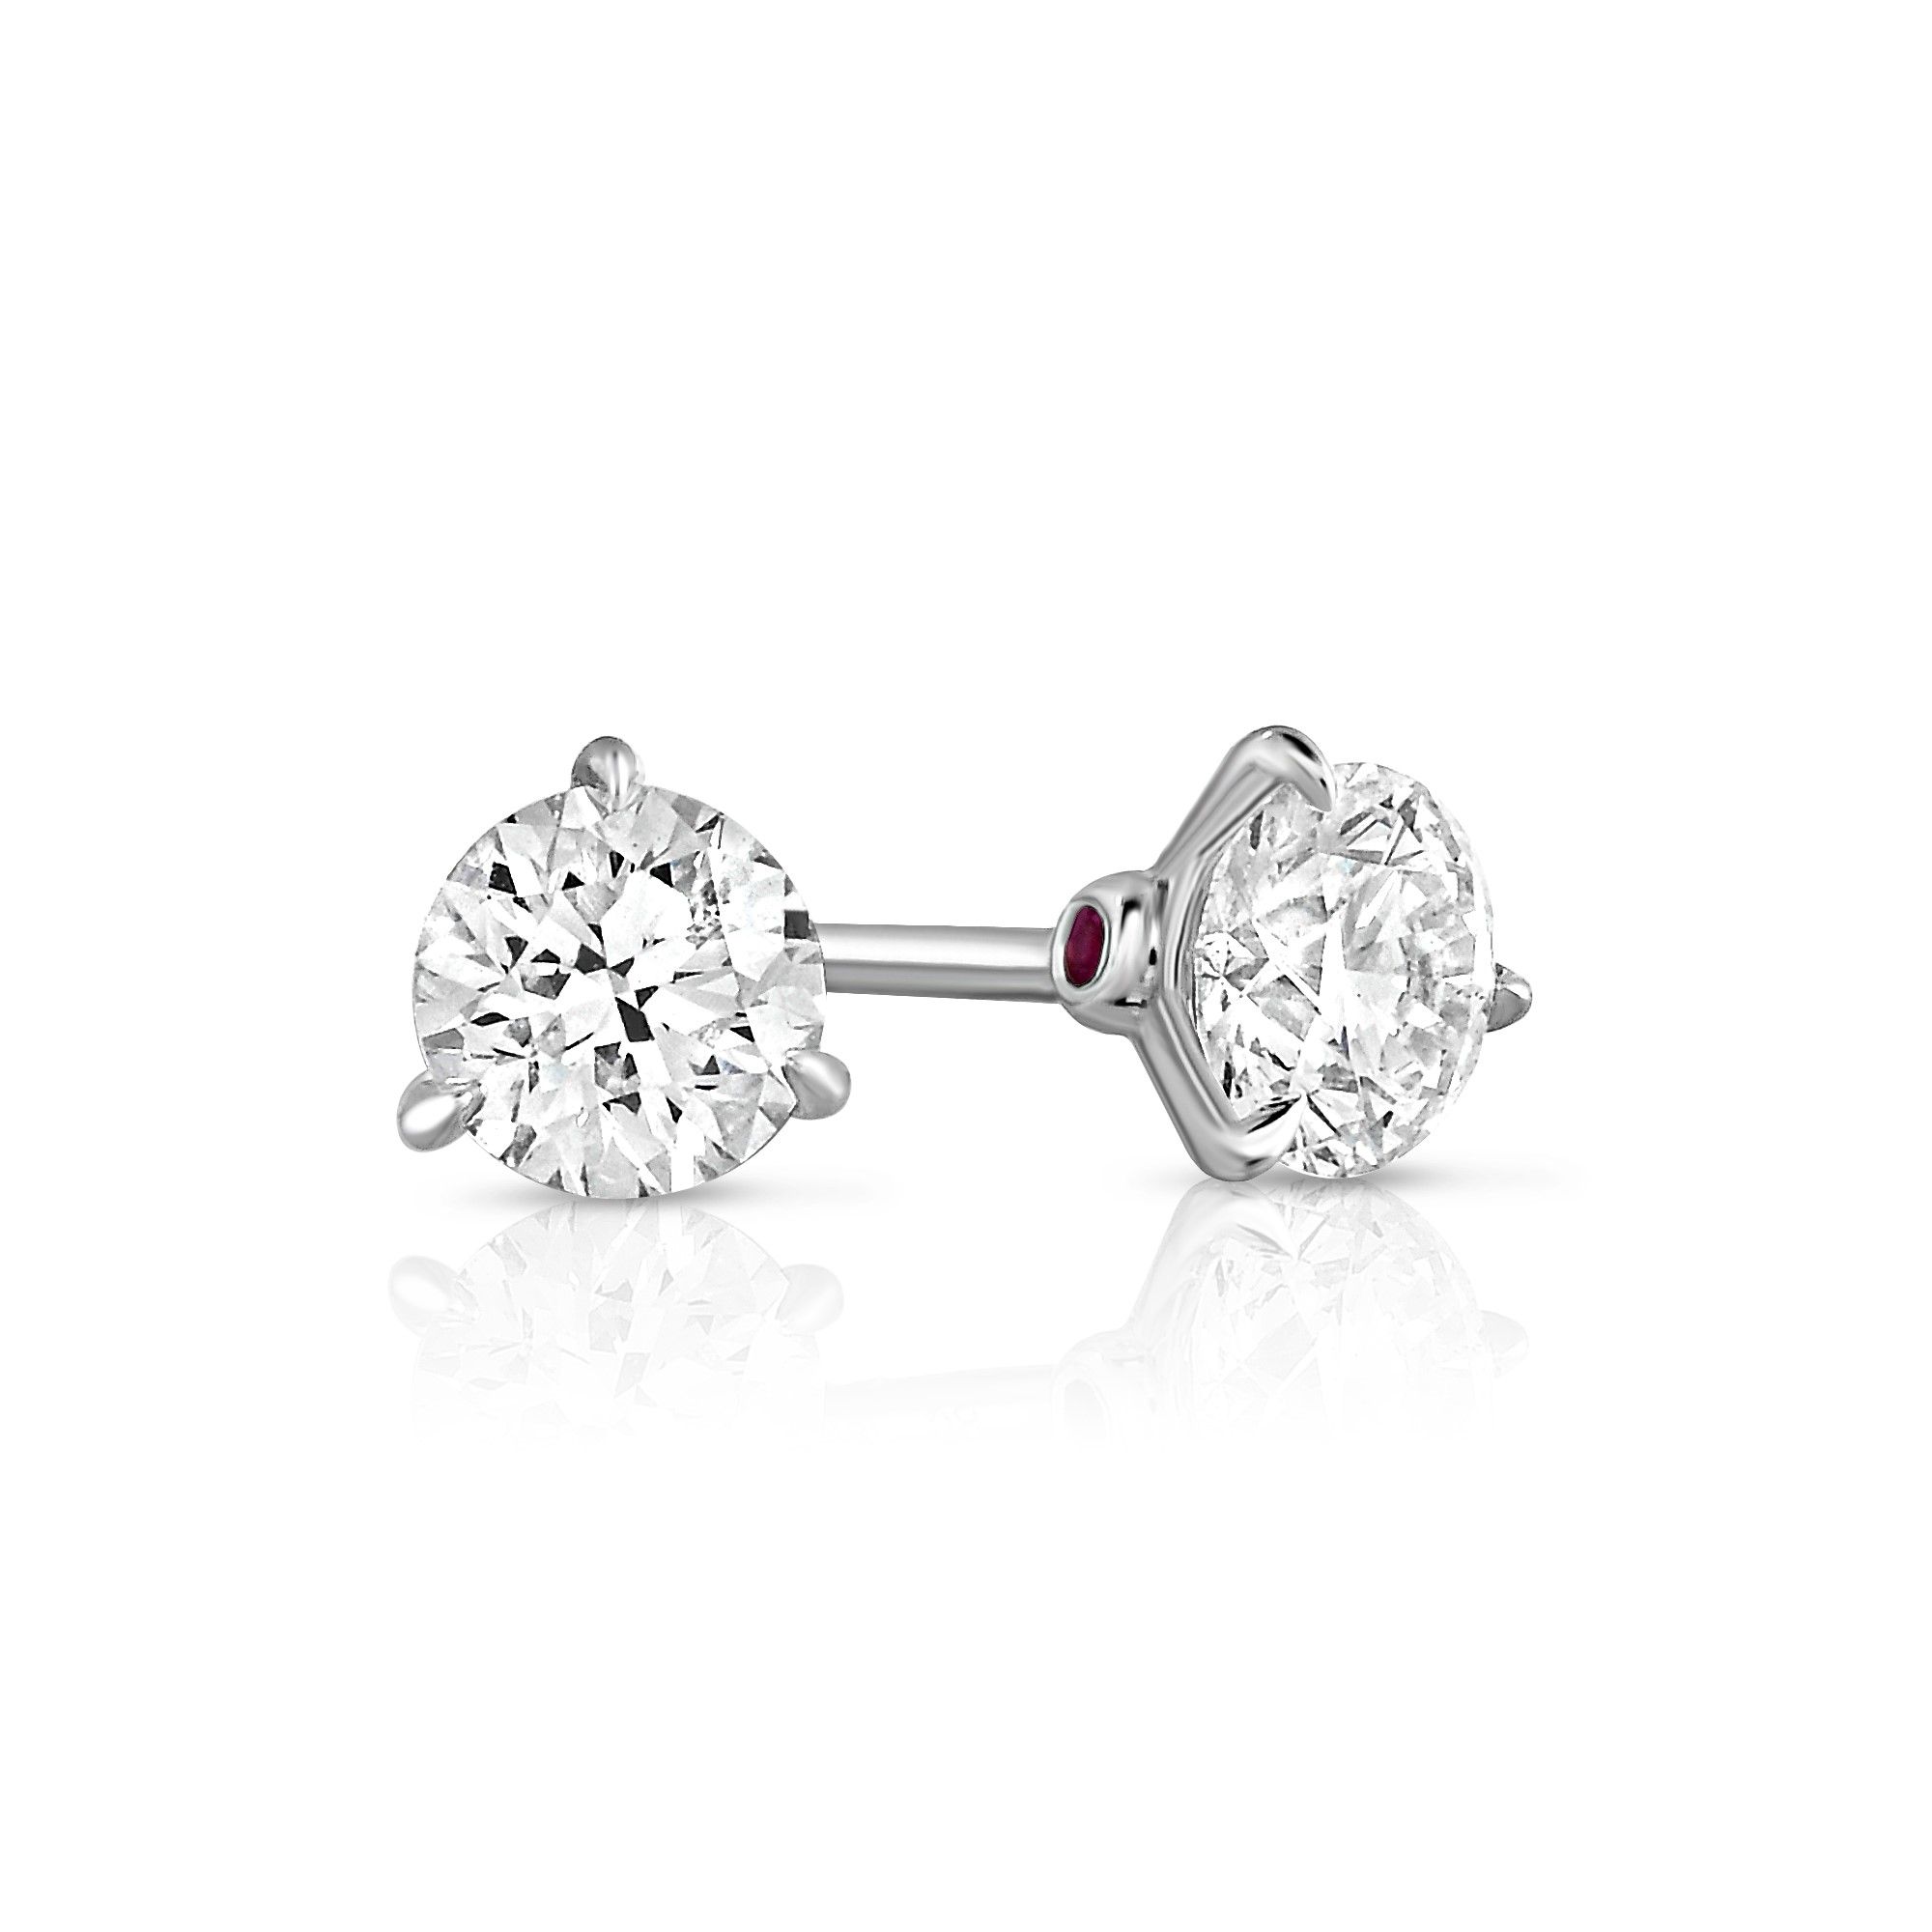 Cento 18K White Gold 1.41cts Diamonds  Gold Earrings with Stones RCSTUDWG6150-303